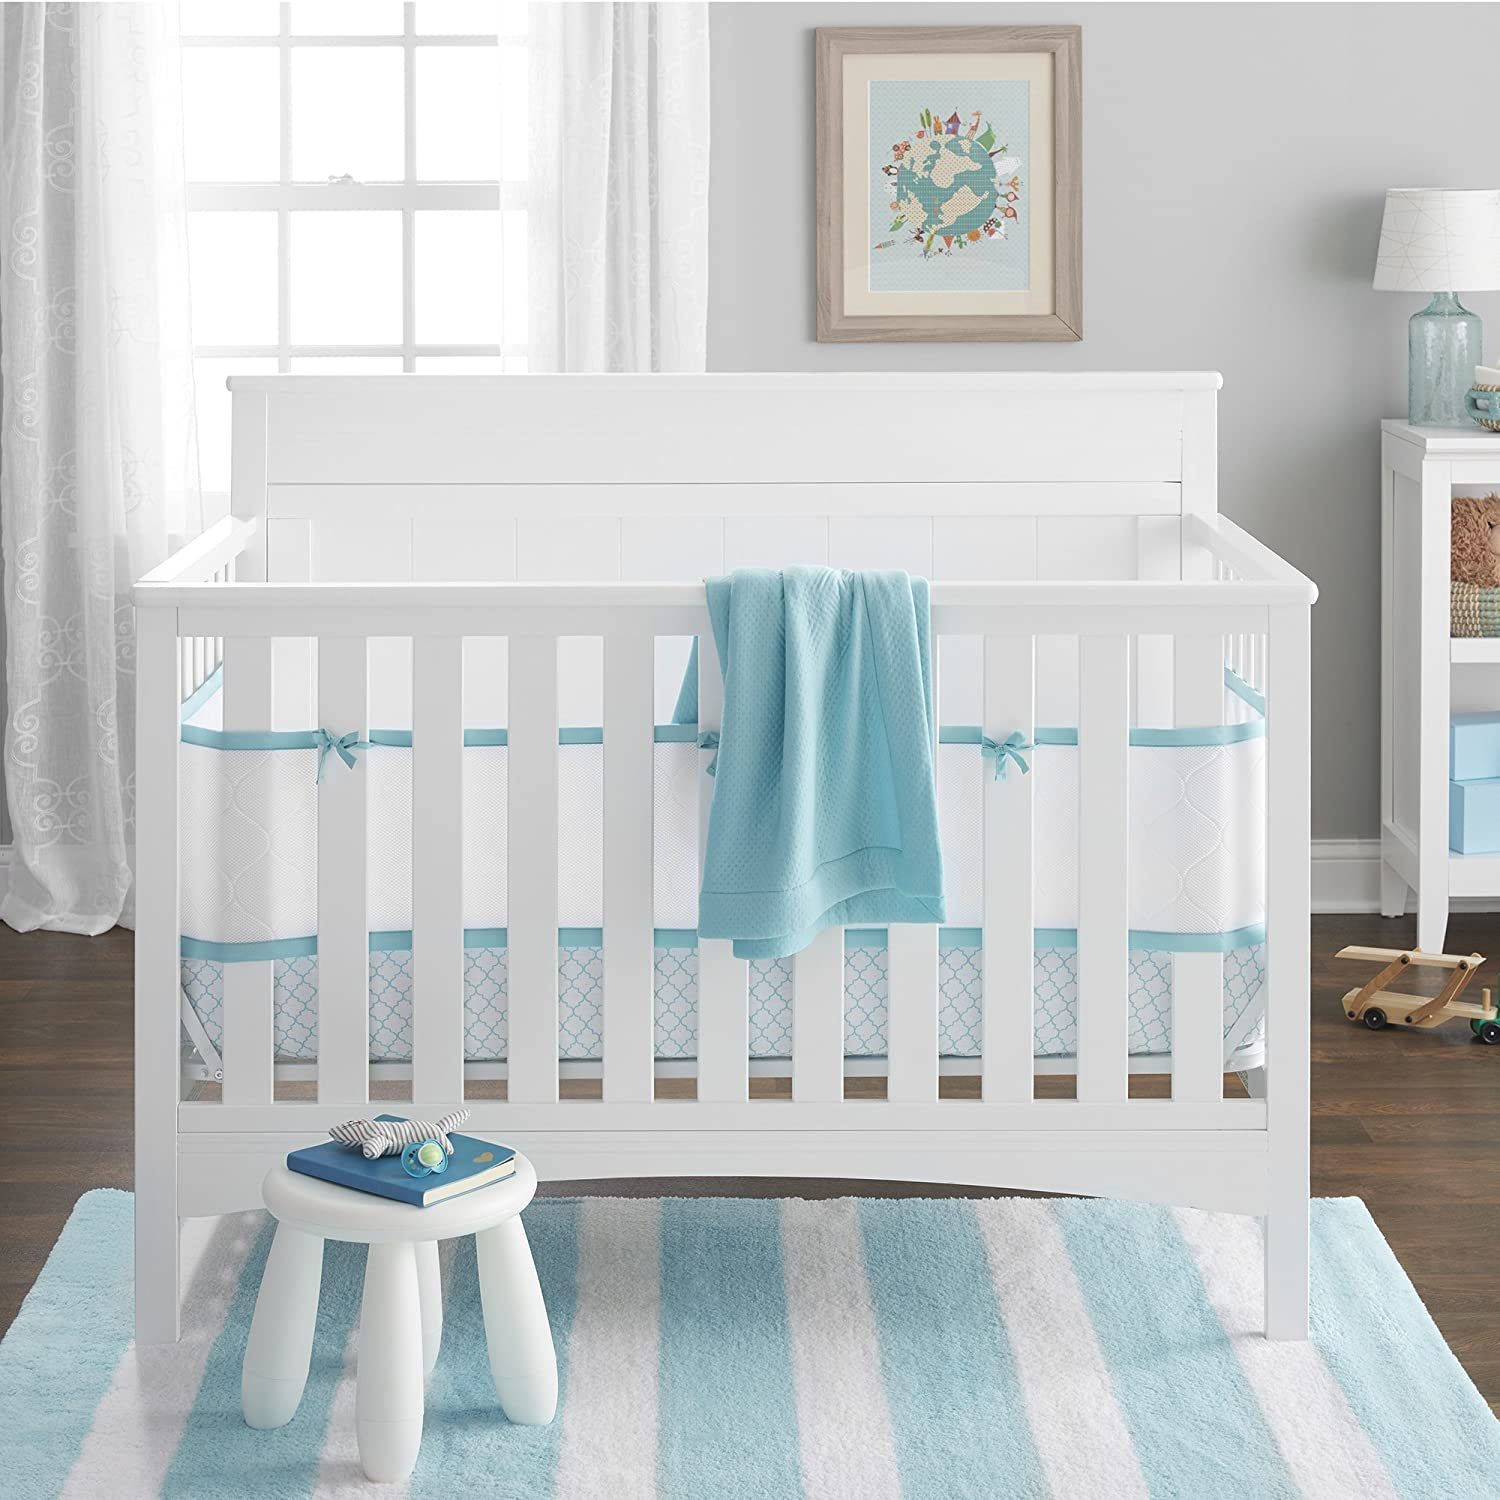 BreathableBaby Deluxe Embossed 4 Piece Bedding Set, Sea Foam by BreathableBaby   B01C2IBO70